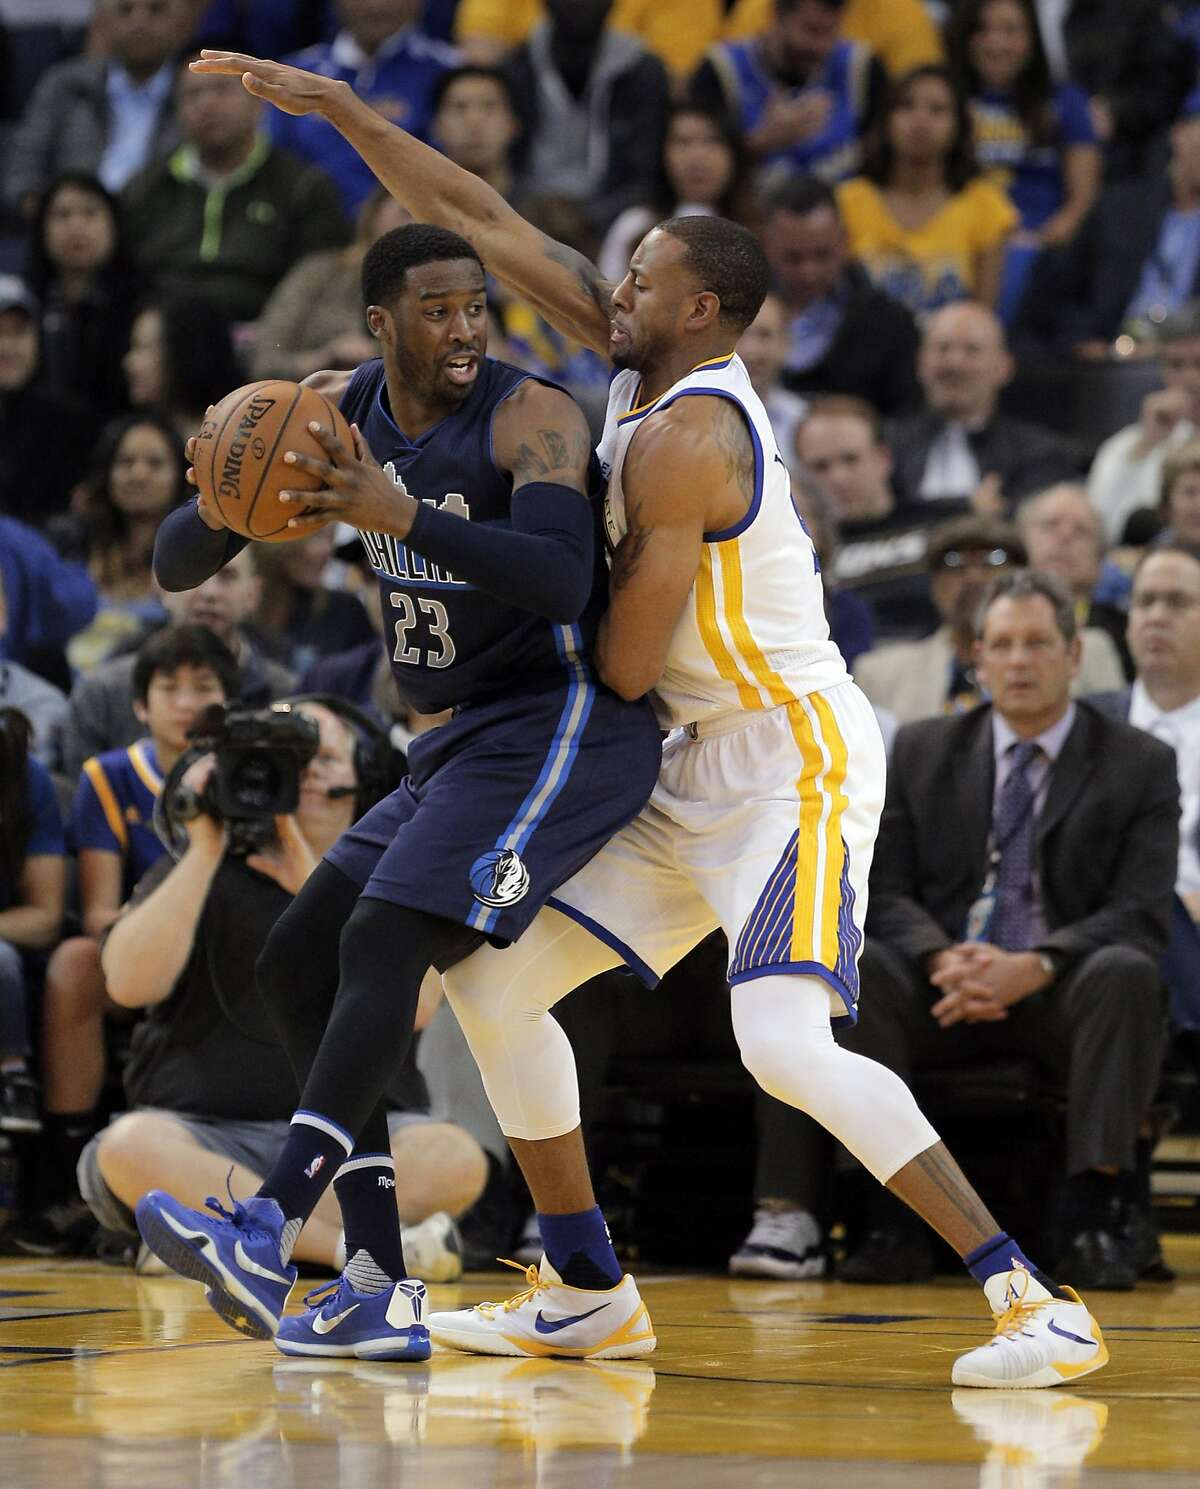 Andre Iguodala (9) guards against Wesley Matthews (23) in the first half as the Golden State Warriors played the Dallas Mavericks at Oracle Arena in Oakland, Calif., on Wednesday, January 27, 2016.